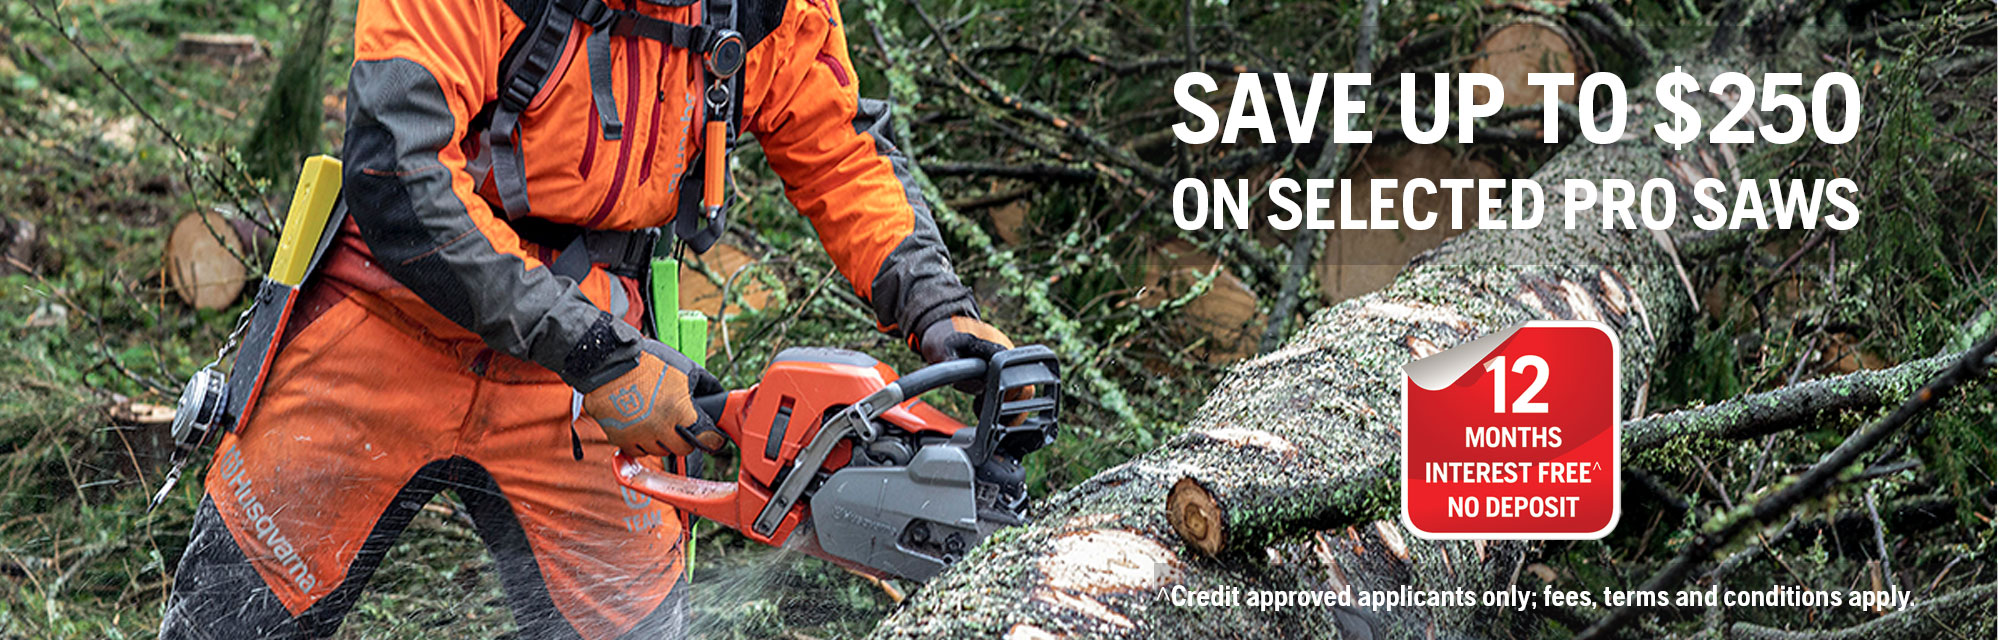 Chainsaws - SAVE UP TO 0